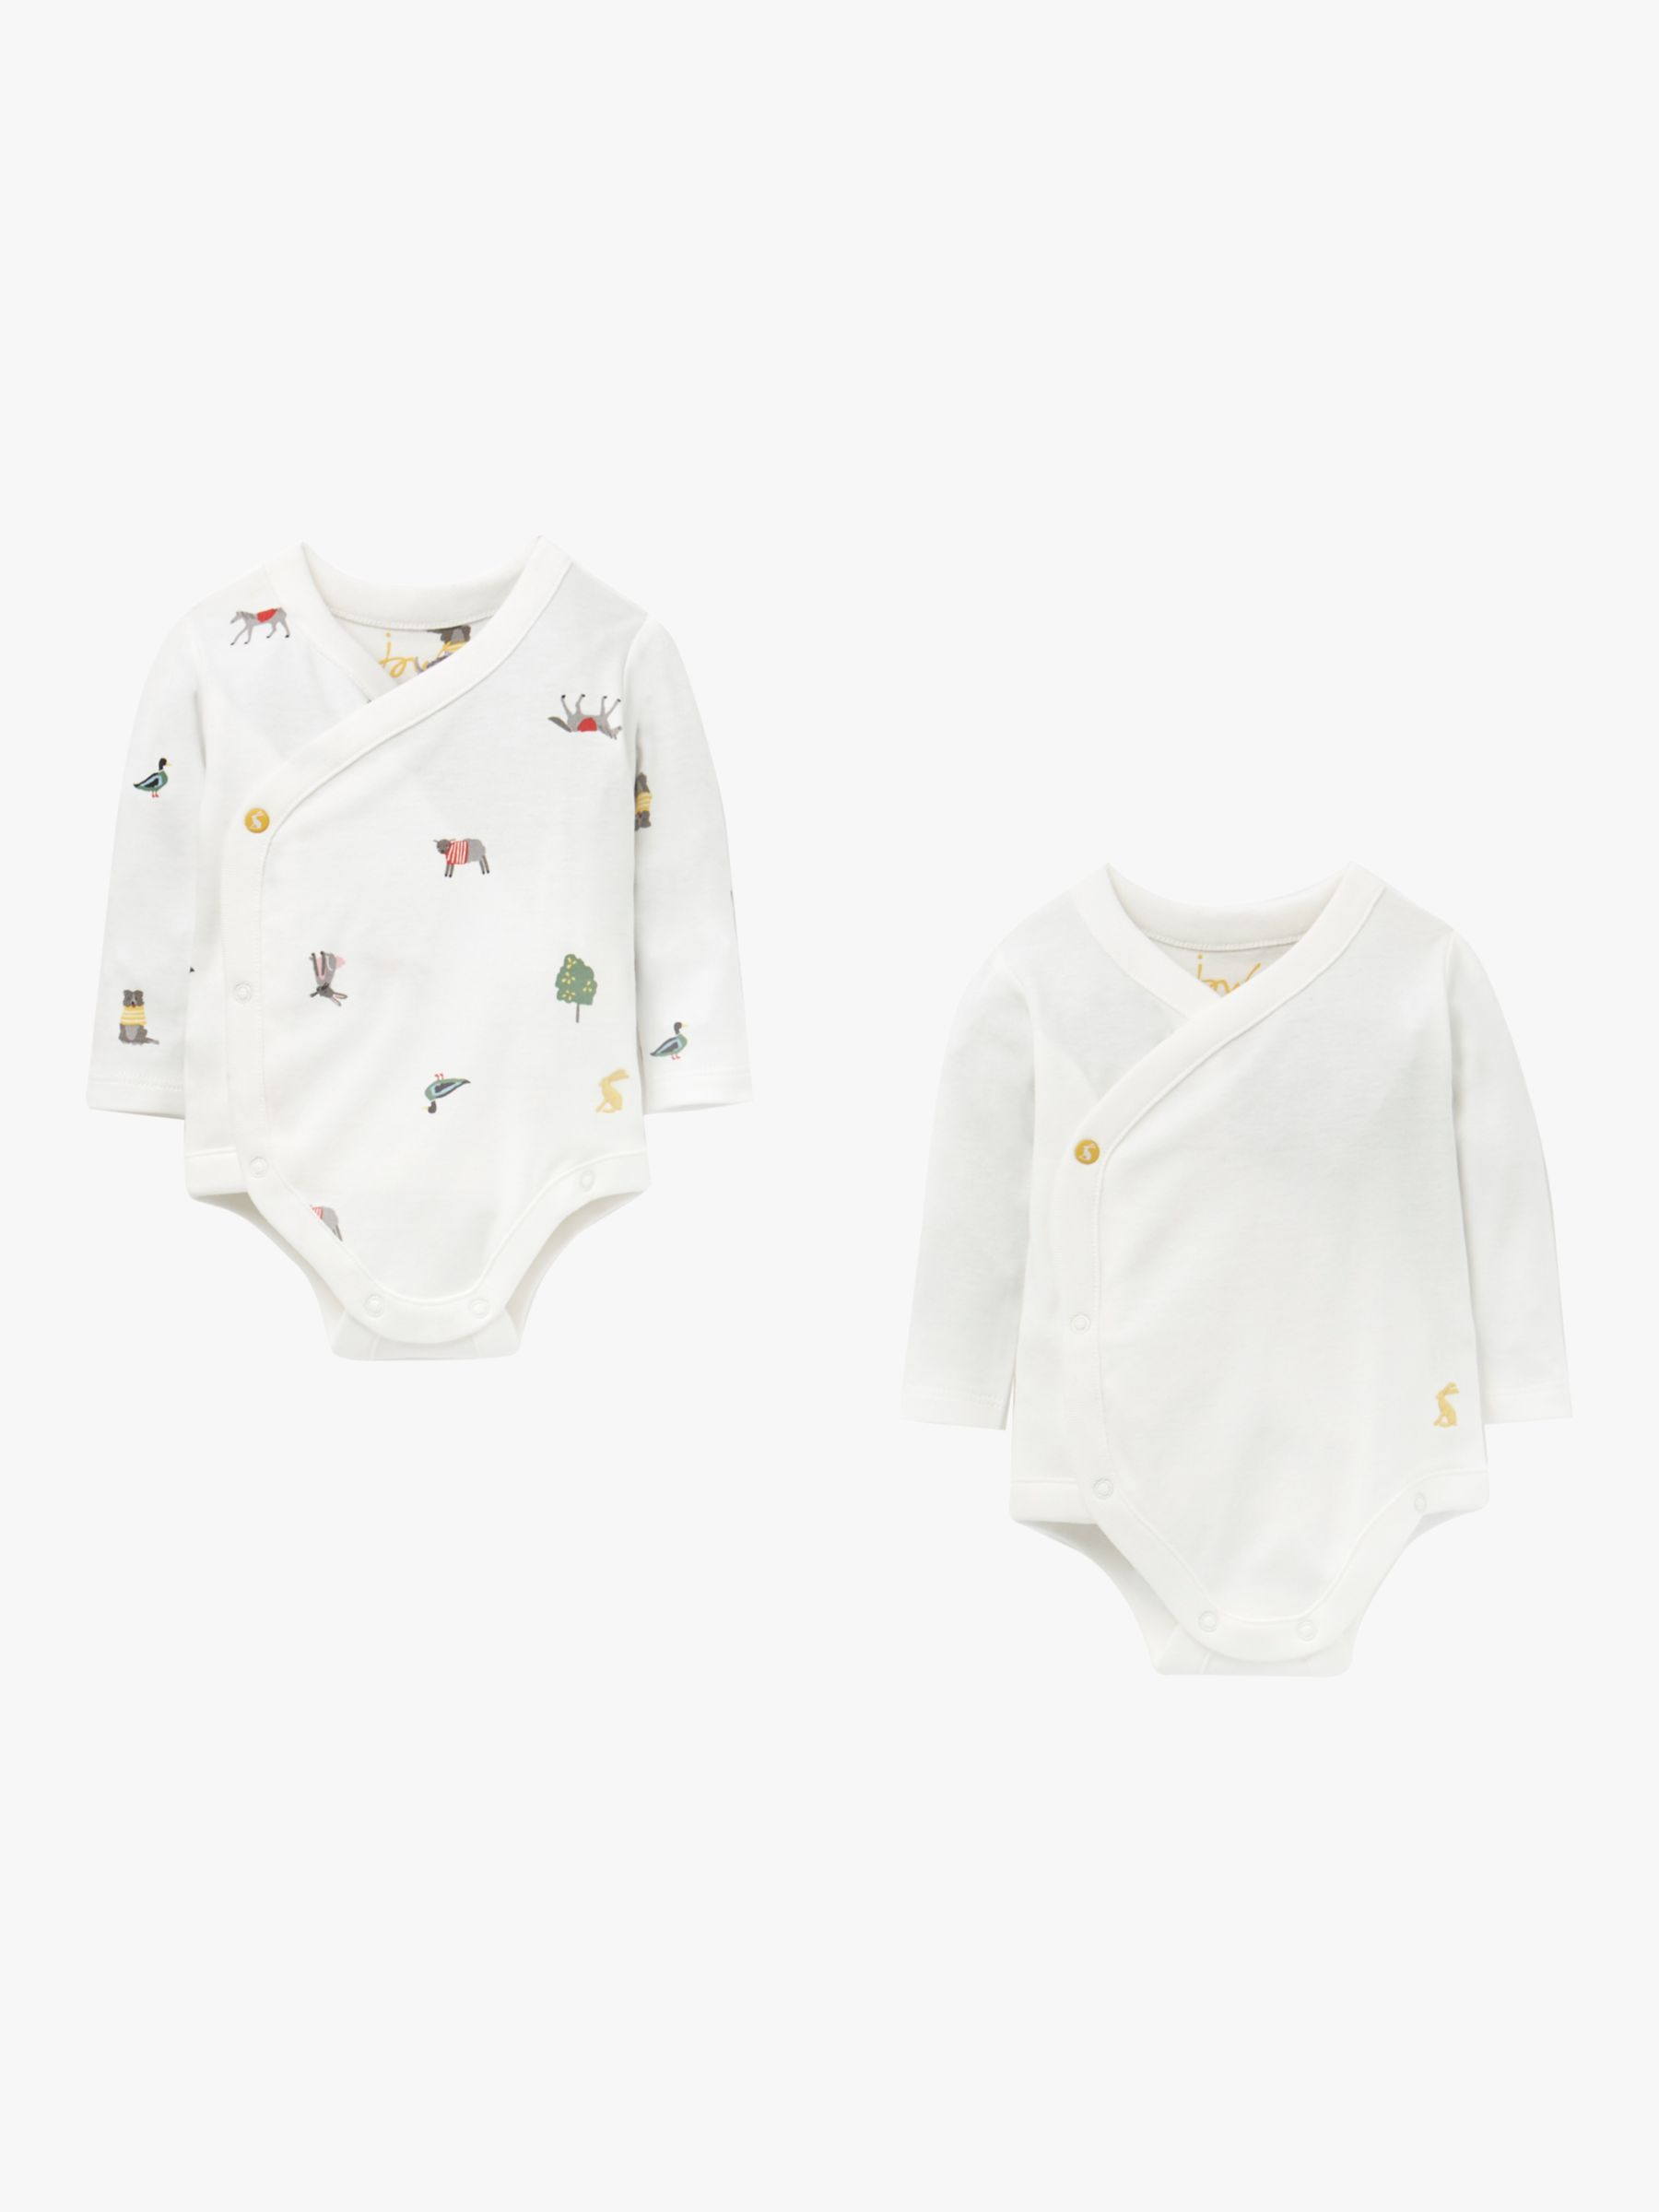 Baby Joule Organic Cotton Kimono Bodysuit, Pack of 7, White at